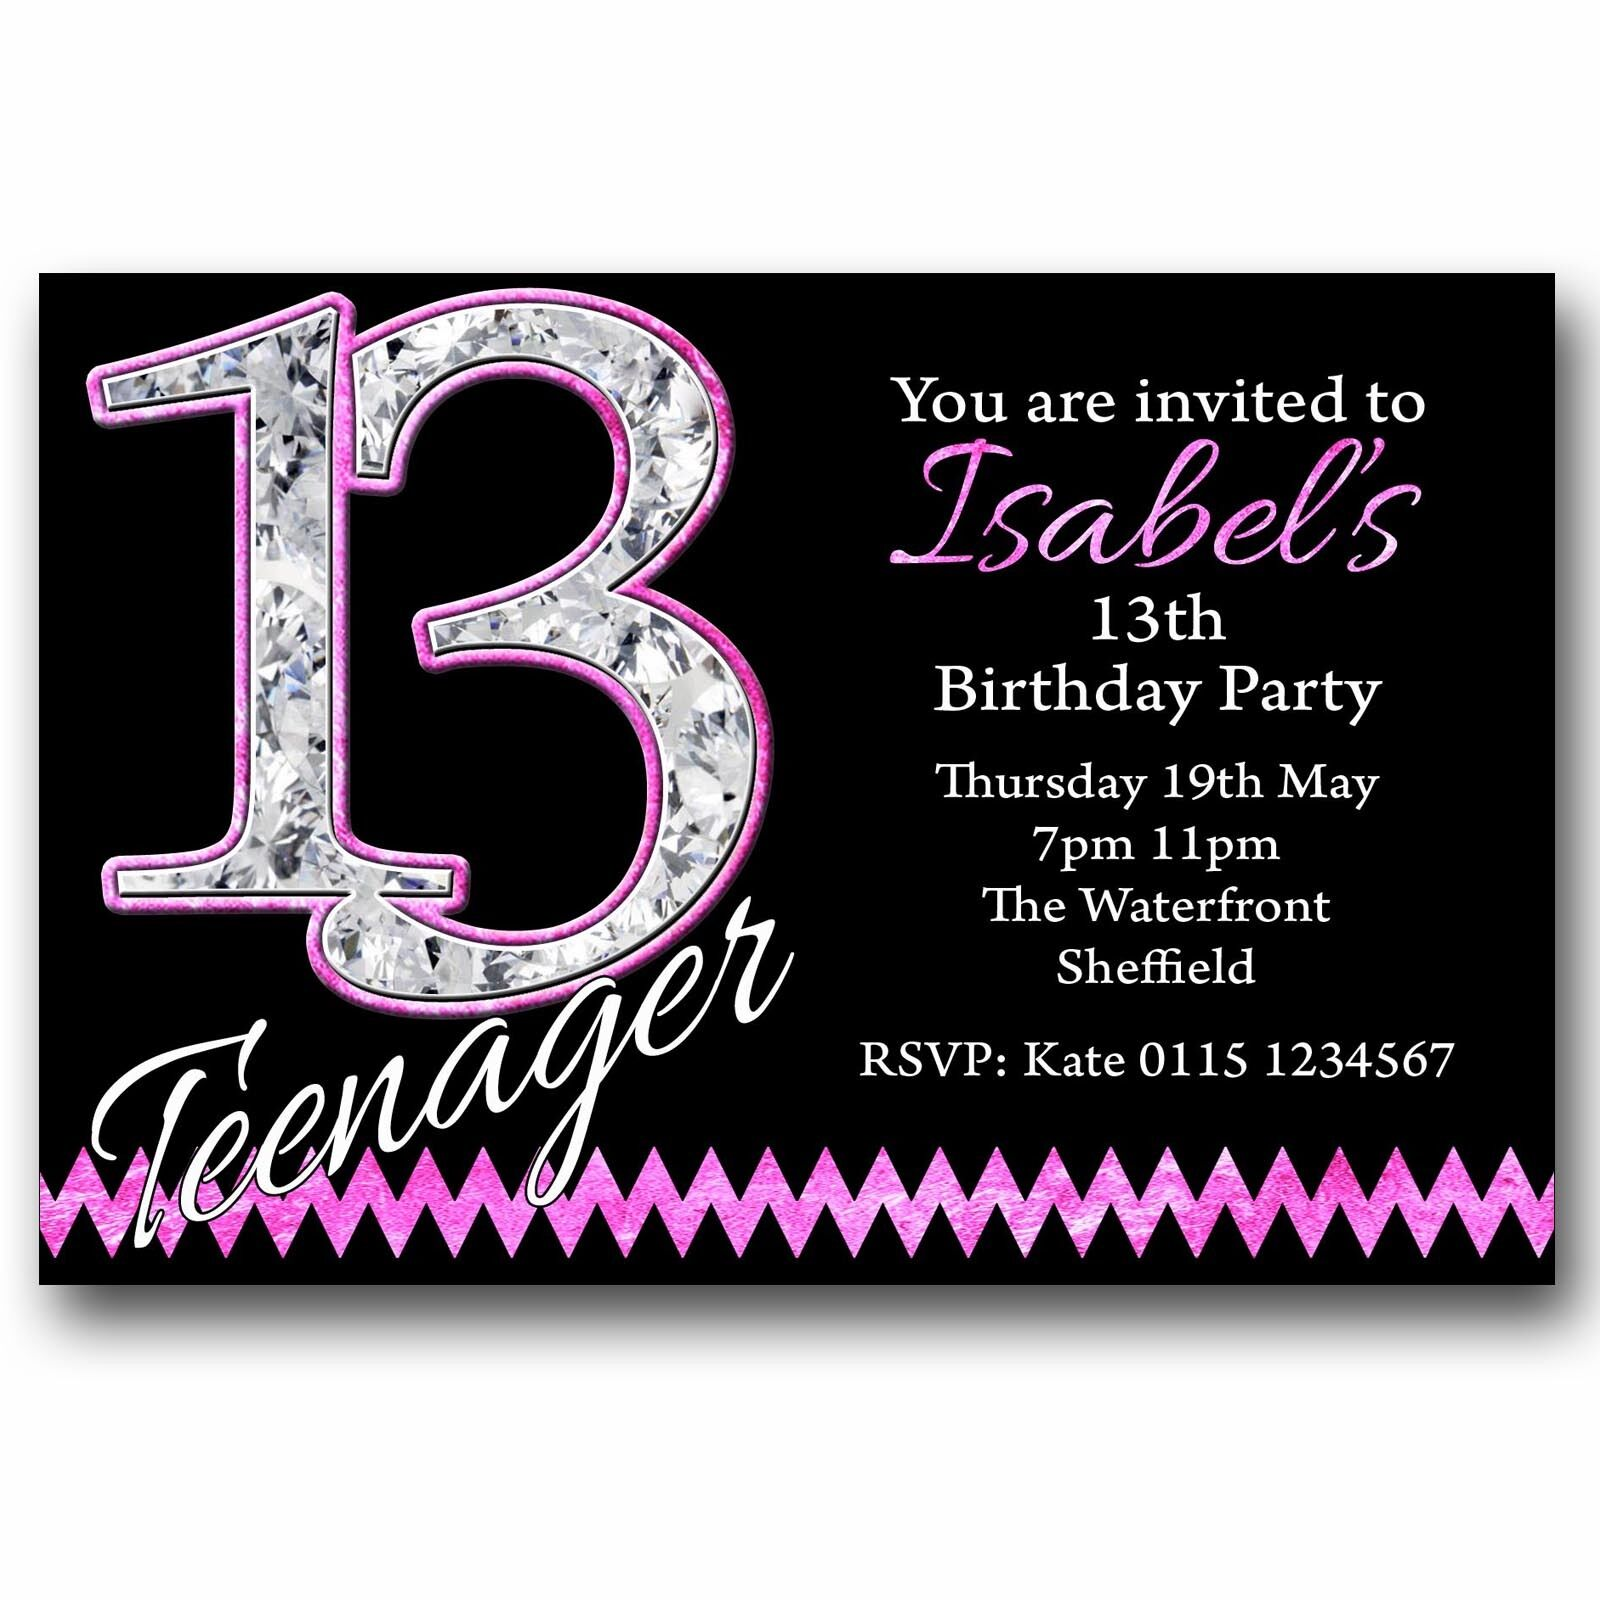 10 personalised boys girls teenager 13th birthday party 10 personalised boys girls teenager 13th birthday party invitations t216 1 of 1free shipping see more filmwisefo